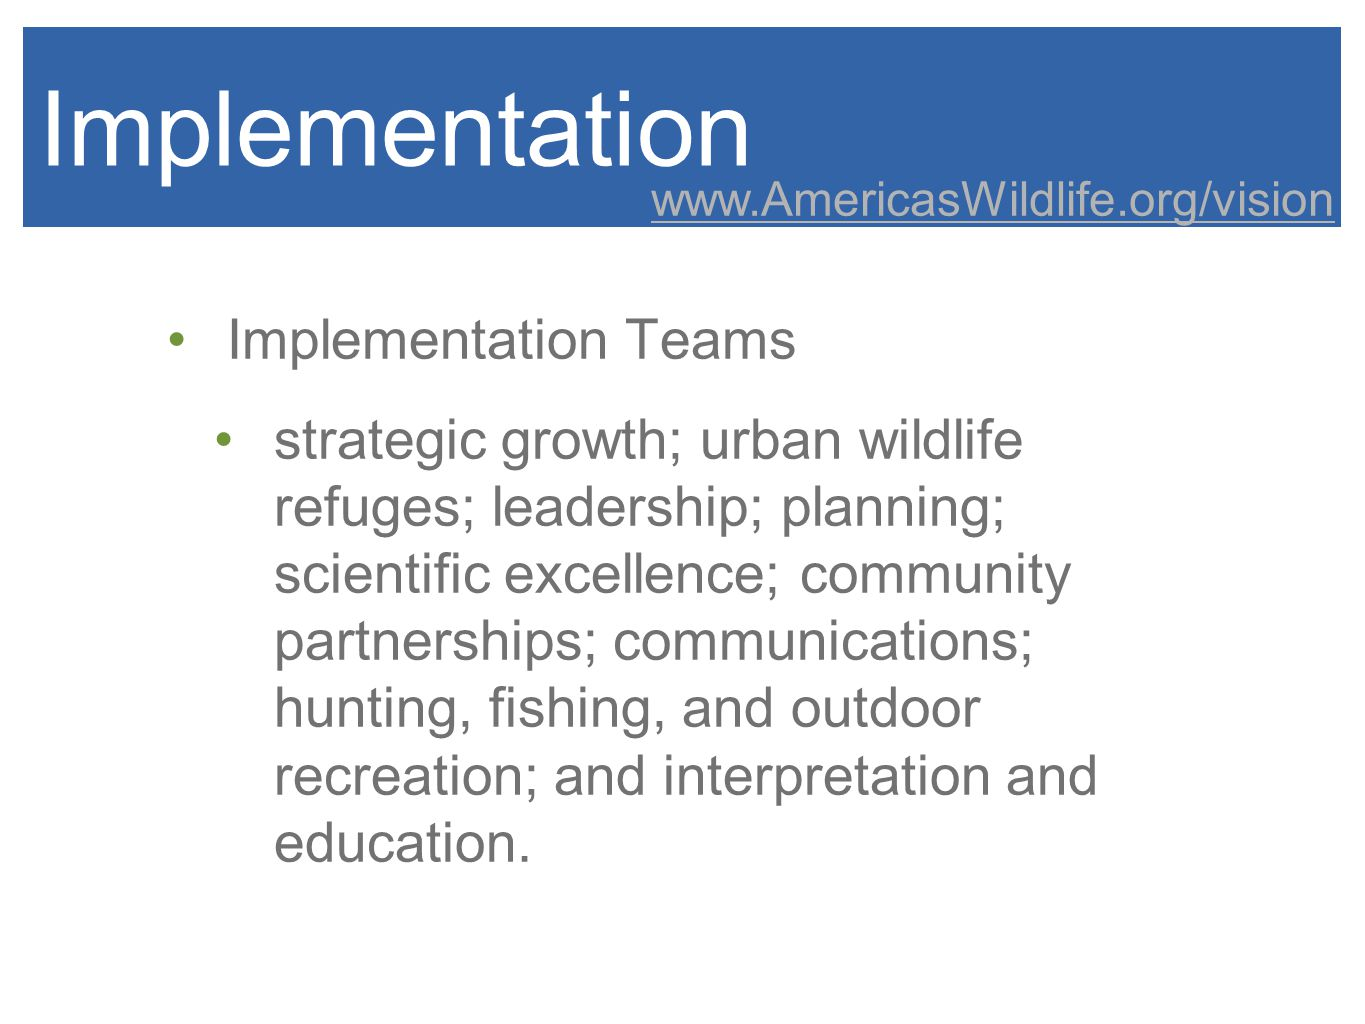 Implementation Implementation Teams strategic growth; urban wildlife refuges; leadership; planning; scientific excellence; community partnerships; communications; hunting, fishing, and outdoor recreation; and interpretation and education.